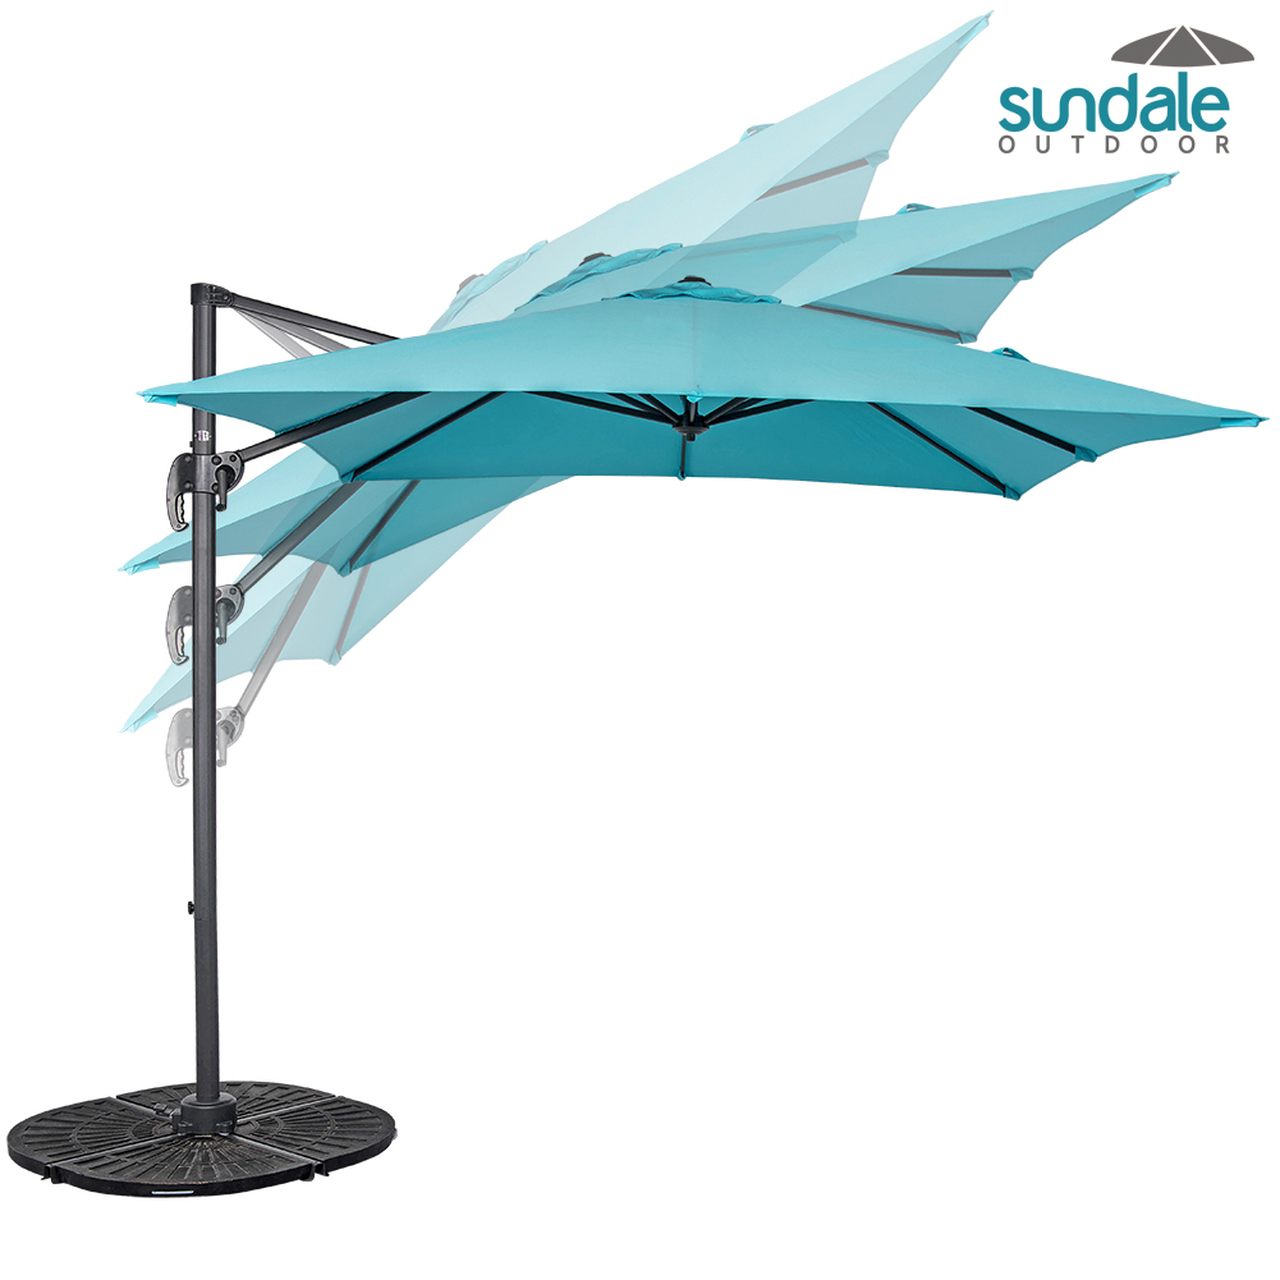 8.2ft Square Hanging Roma Offset Umbrella Outdoor Patio Sun Shade  Cantilever Crank Canopy (Light